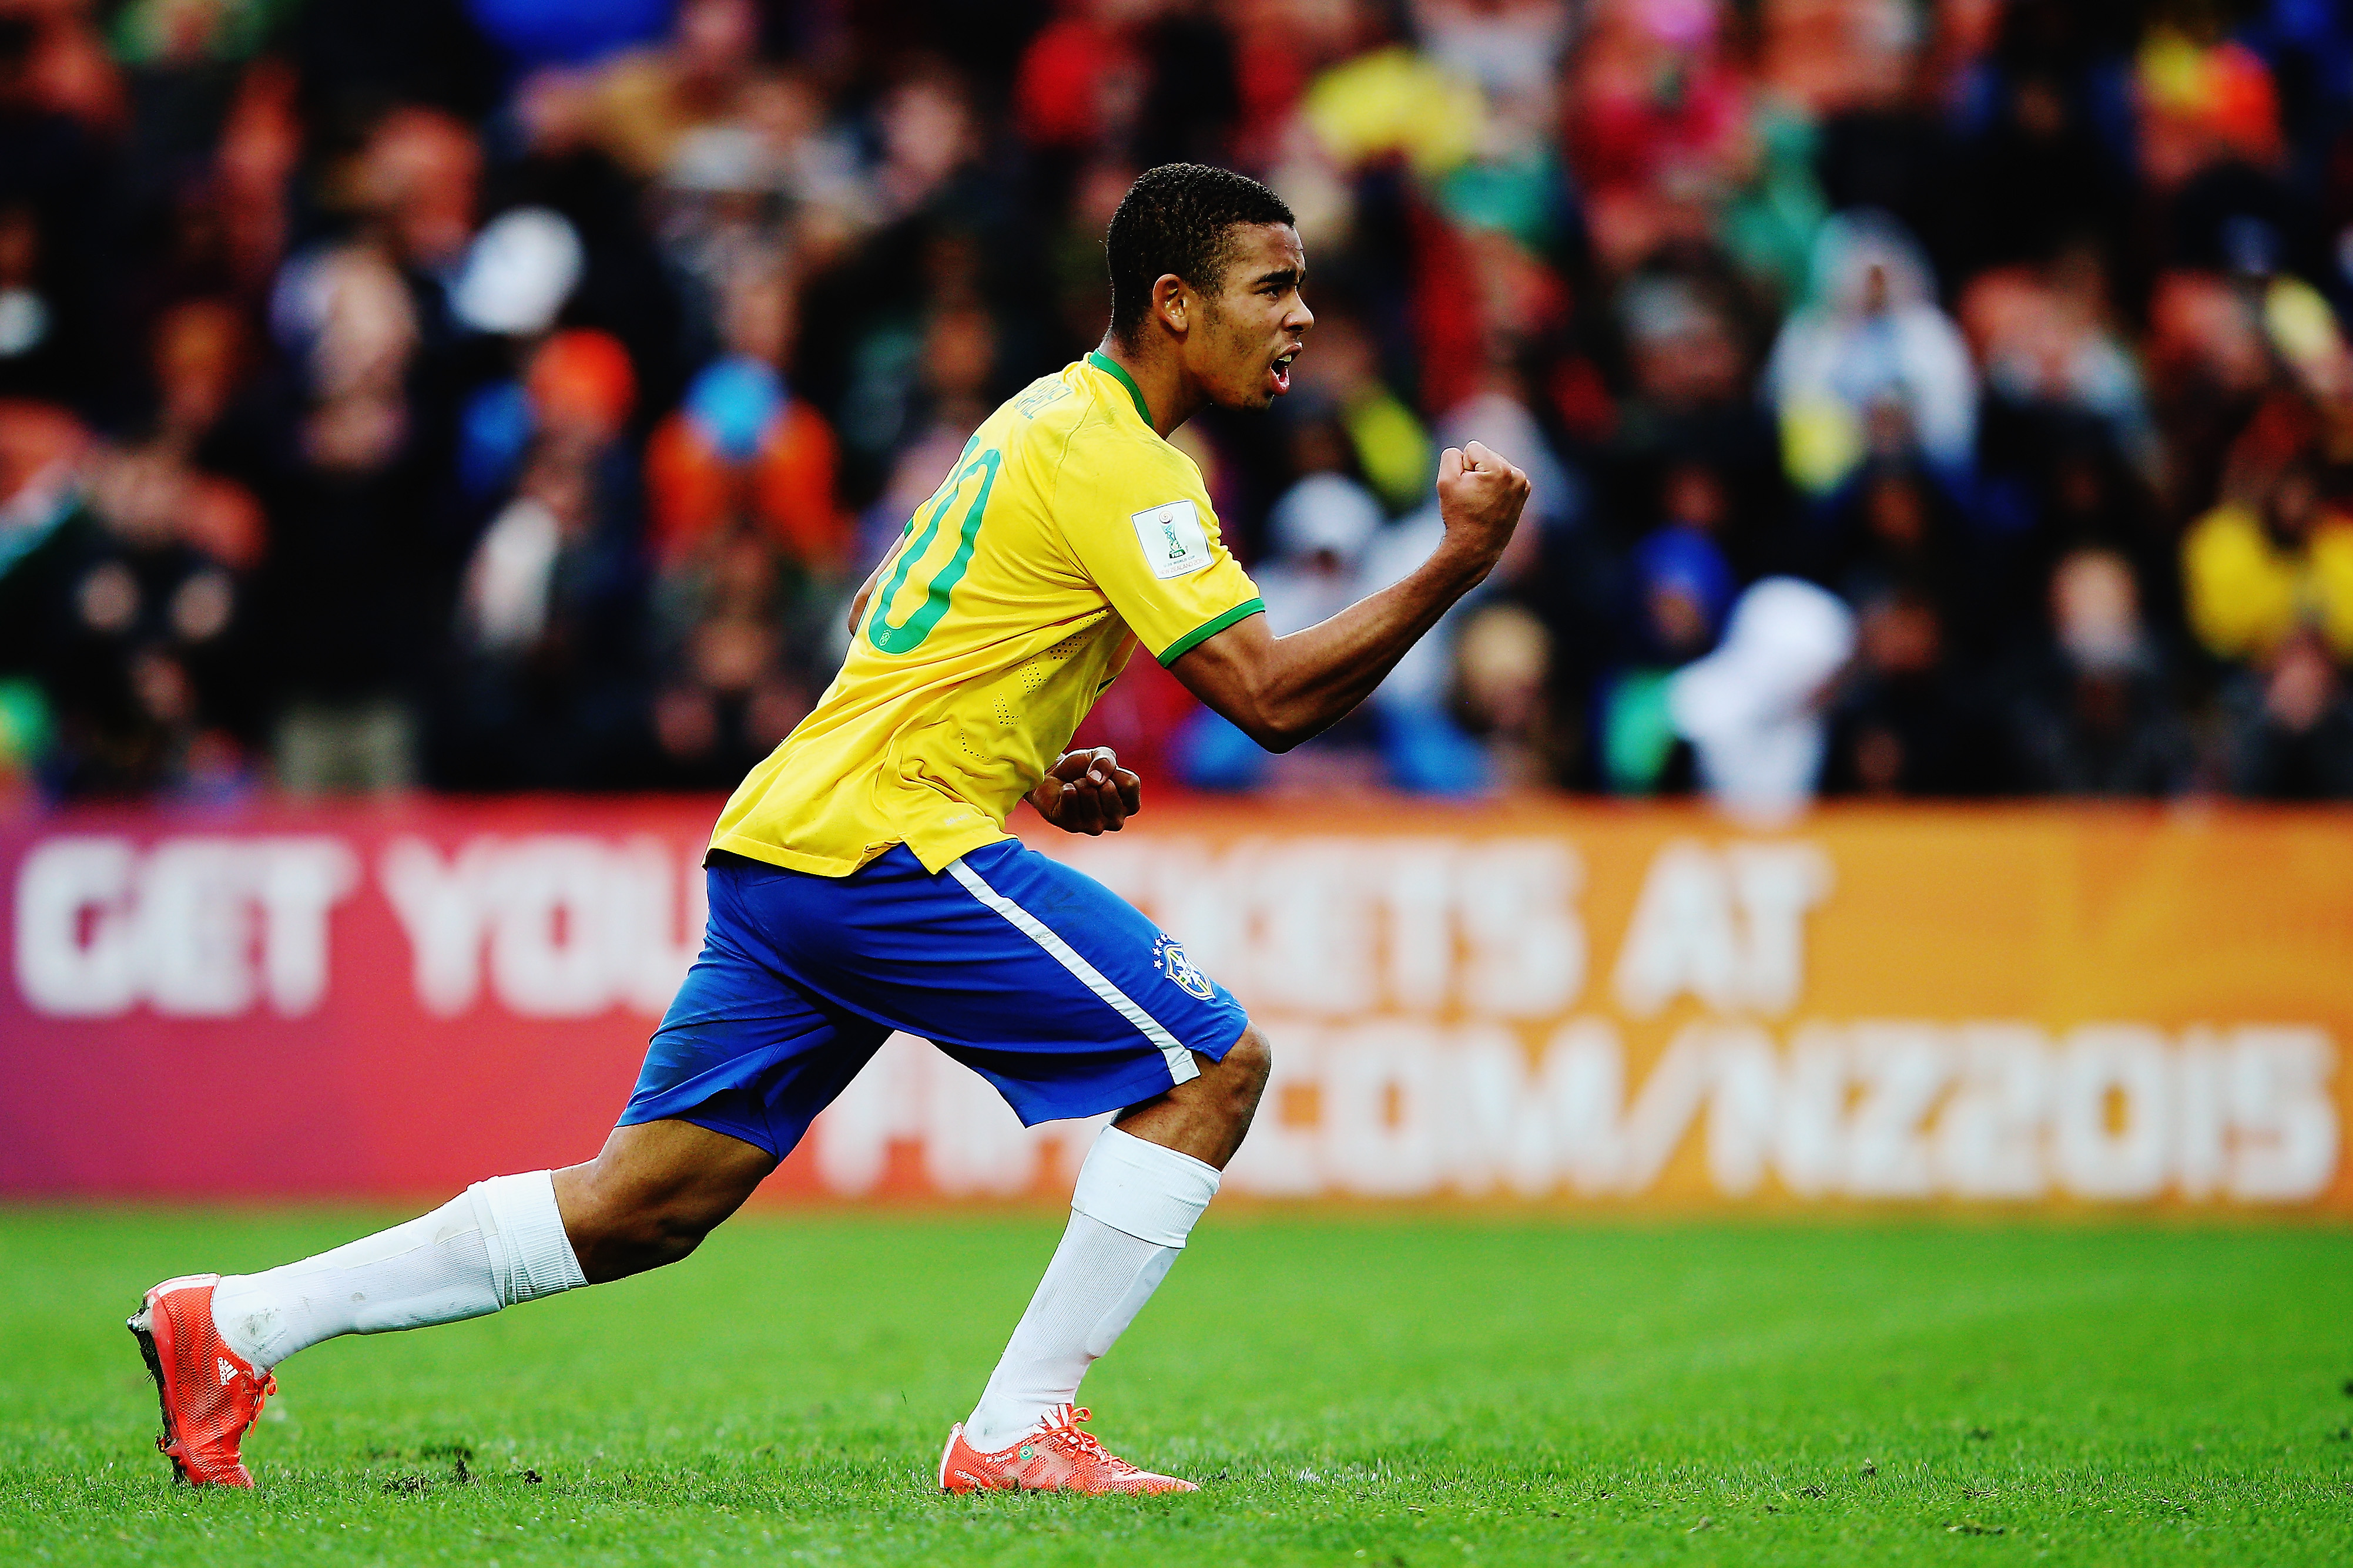 HAMILTON, NEW ZEALAND - JUNE 14:  Gabriel Jesus of Brazil celebrates after scoring a goal during a penalty shoot out during the FIFA U-20 World Cup New Zealand 2015 quarter final match between Brazil and Portugal held at Waikato Stadium on June 14, 2015 in Hamilton, New Zealand.  (Photo by Hannah Peters/Getty Images)